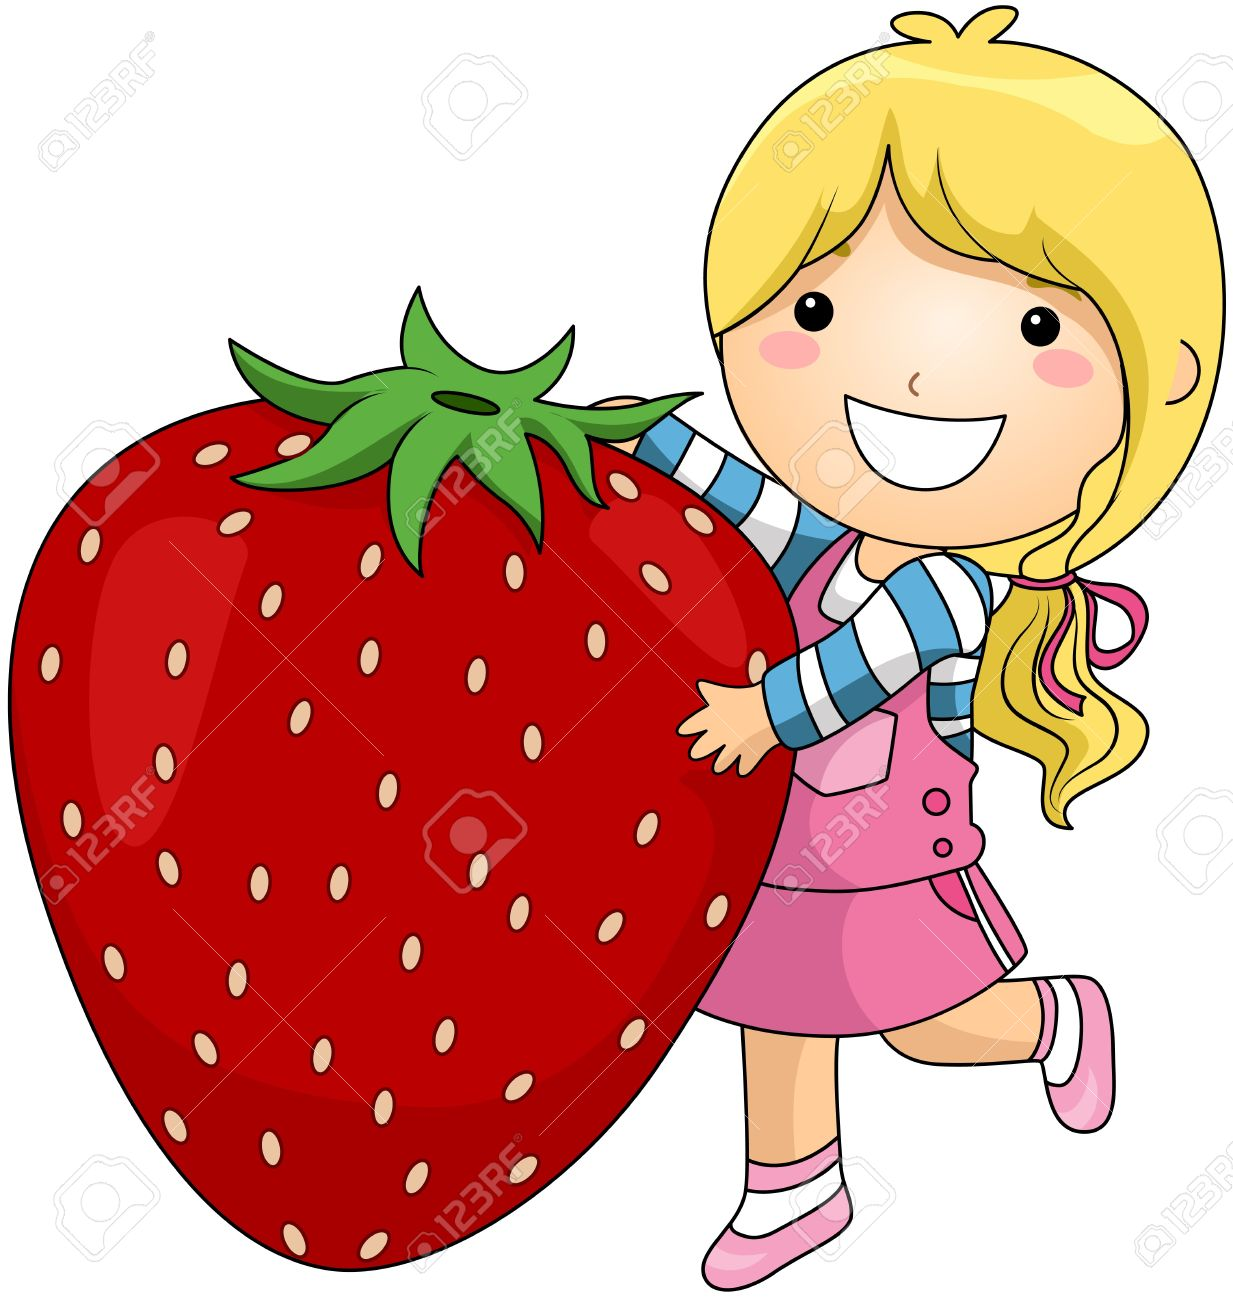 Clip Art Strawberry Stock Photos Images Royalty Free Clip Art